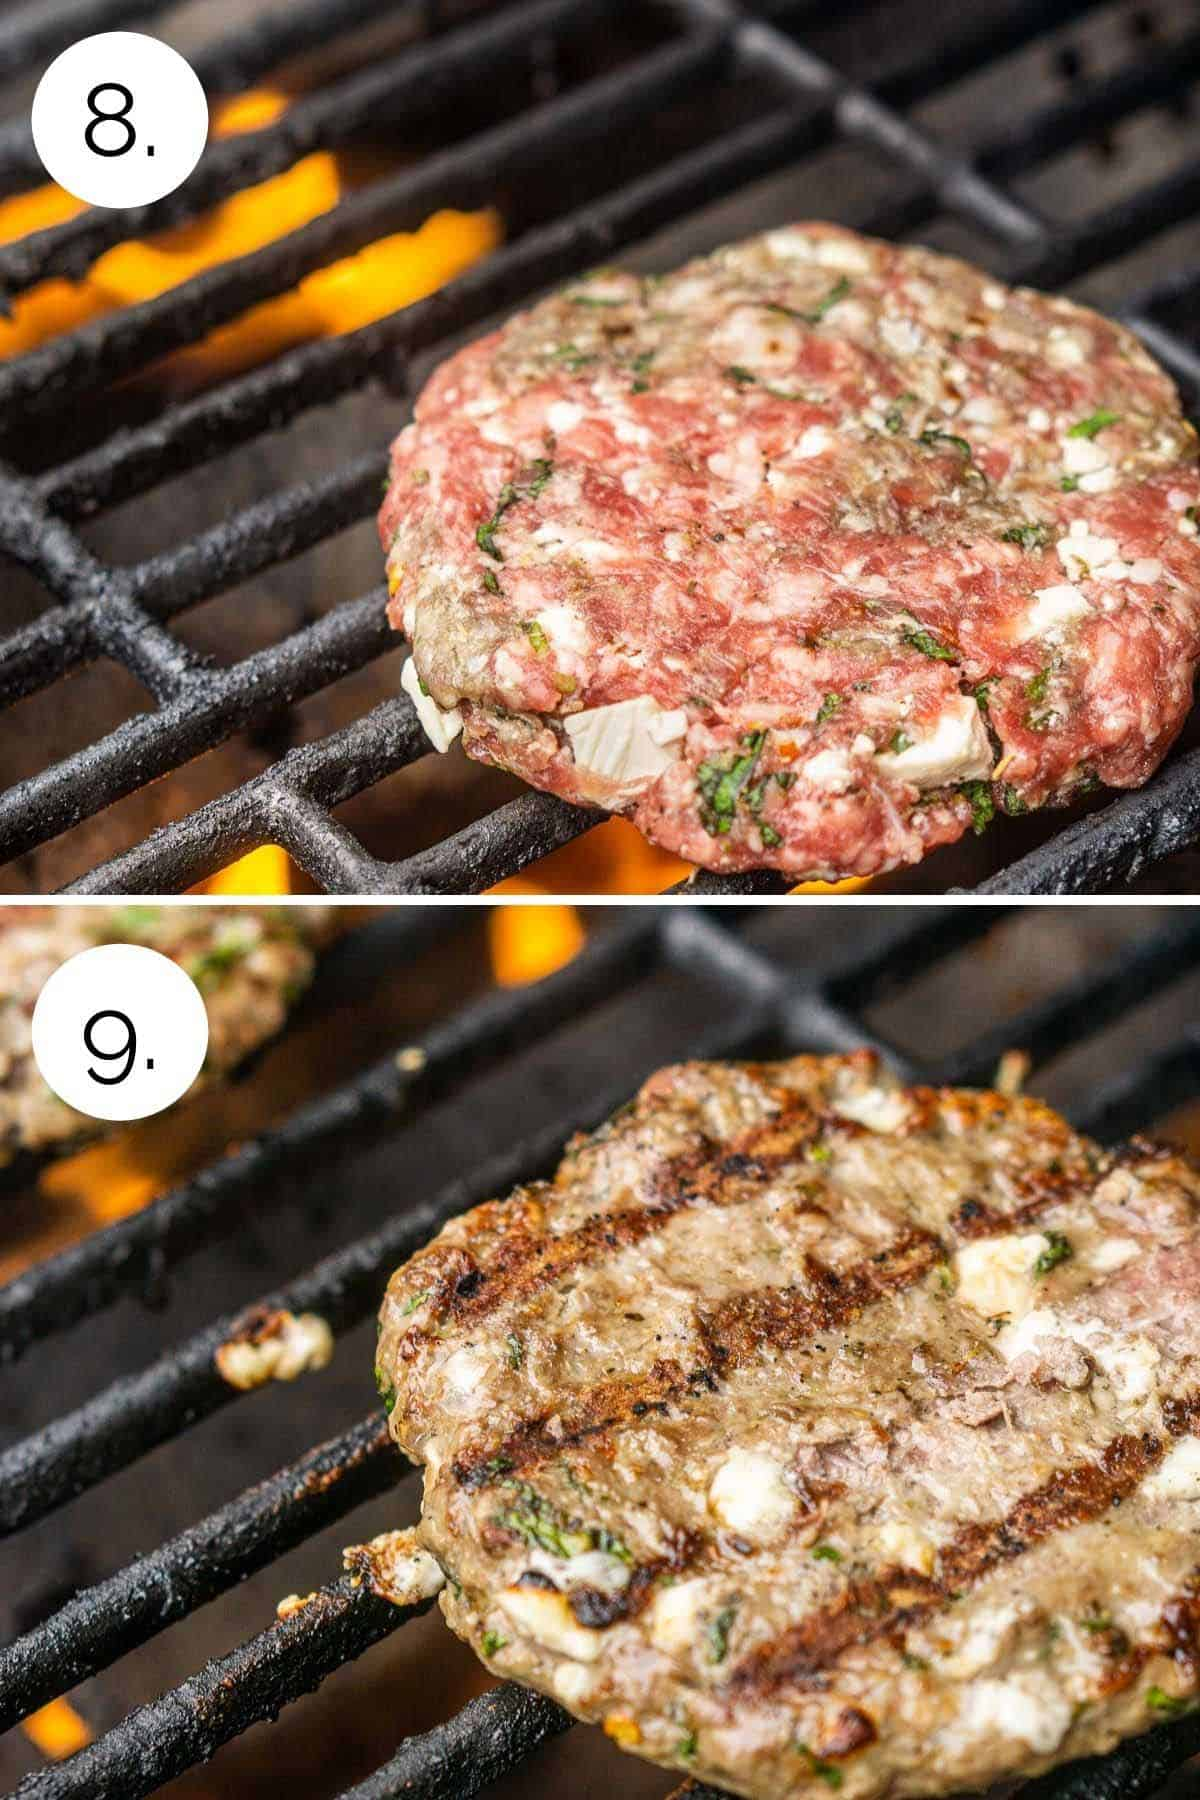 Grilling the lamb patties over an open flame.